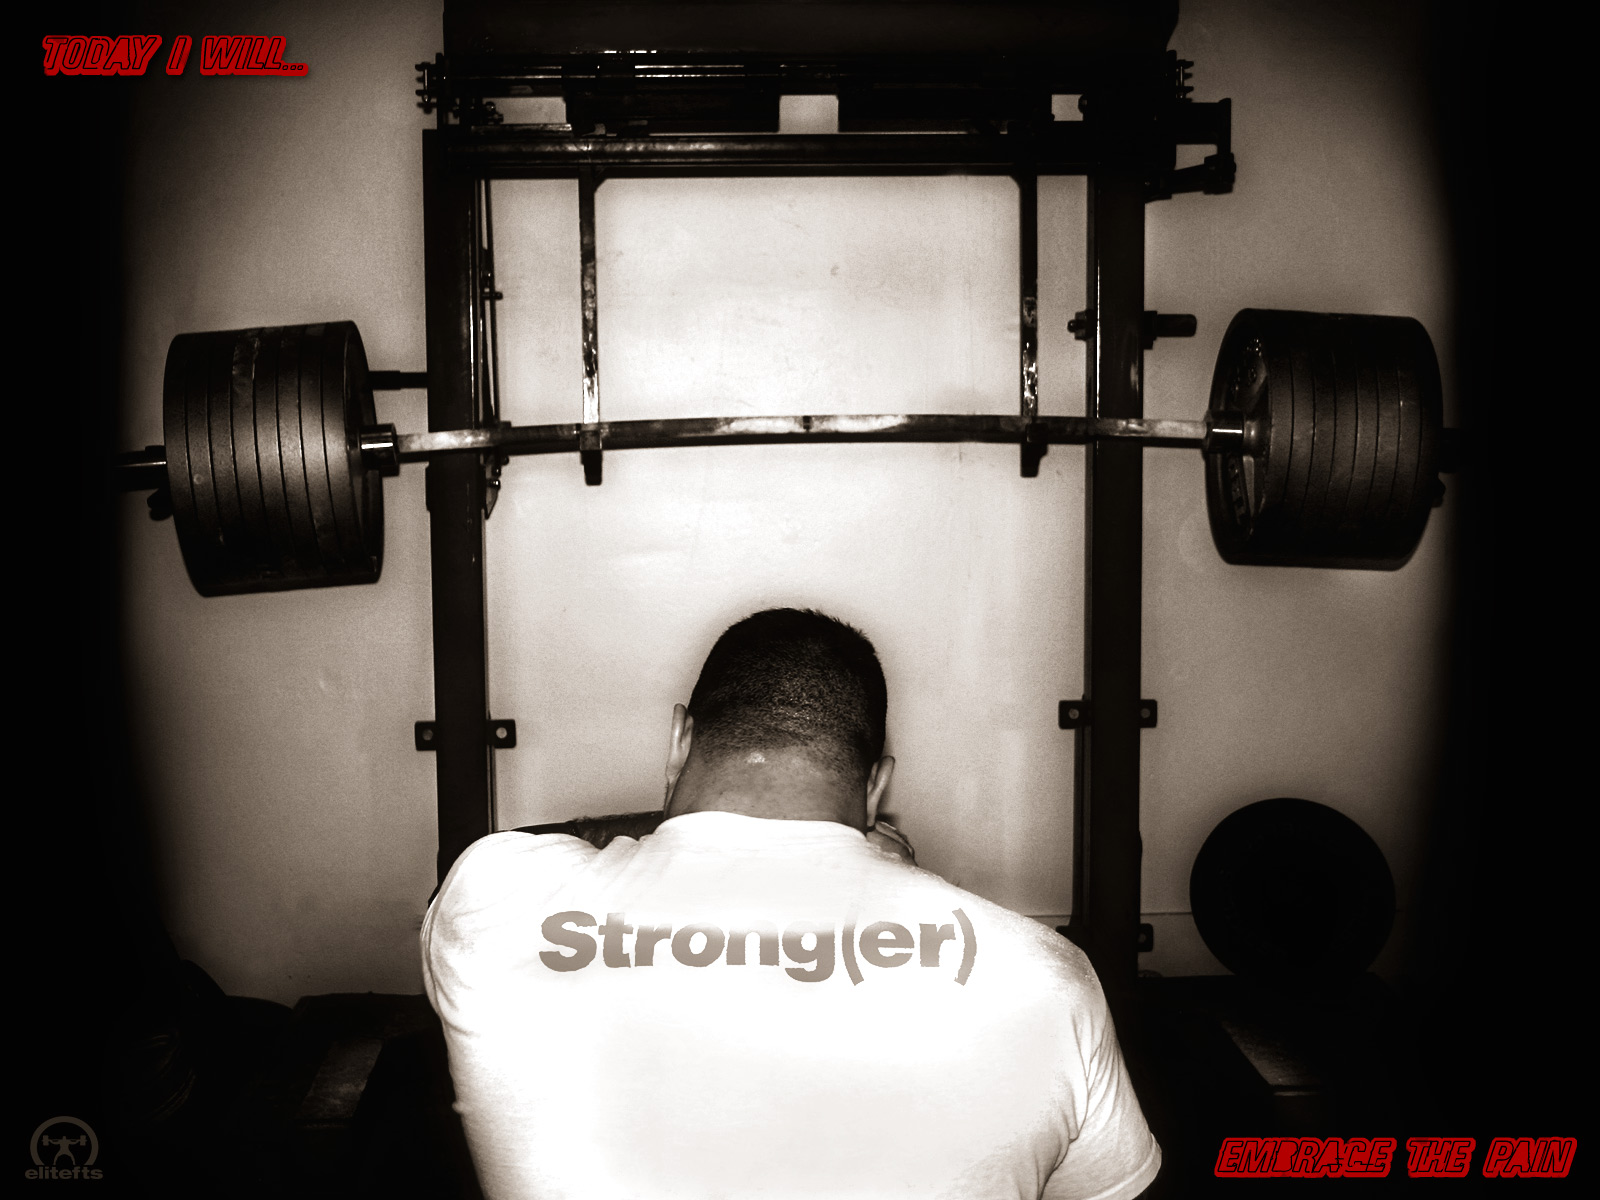 Strongman training wallpaper